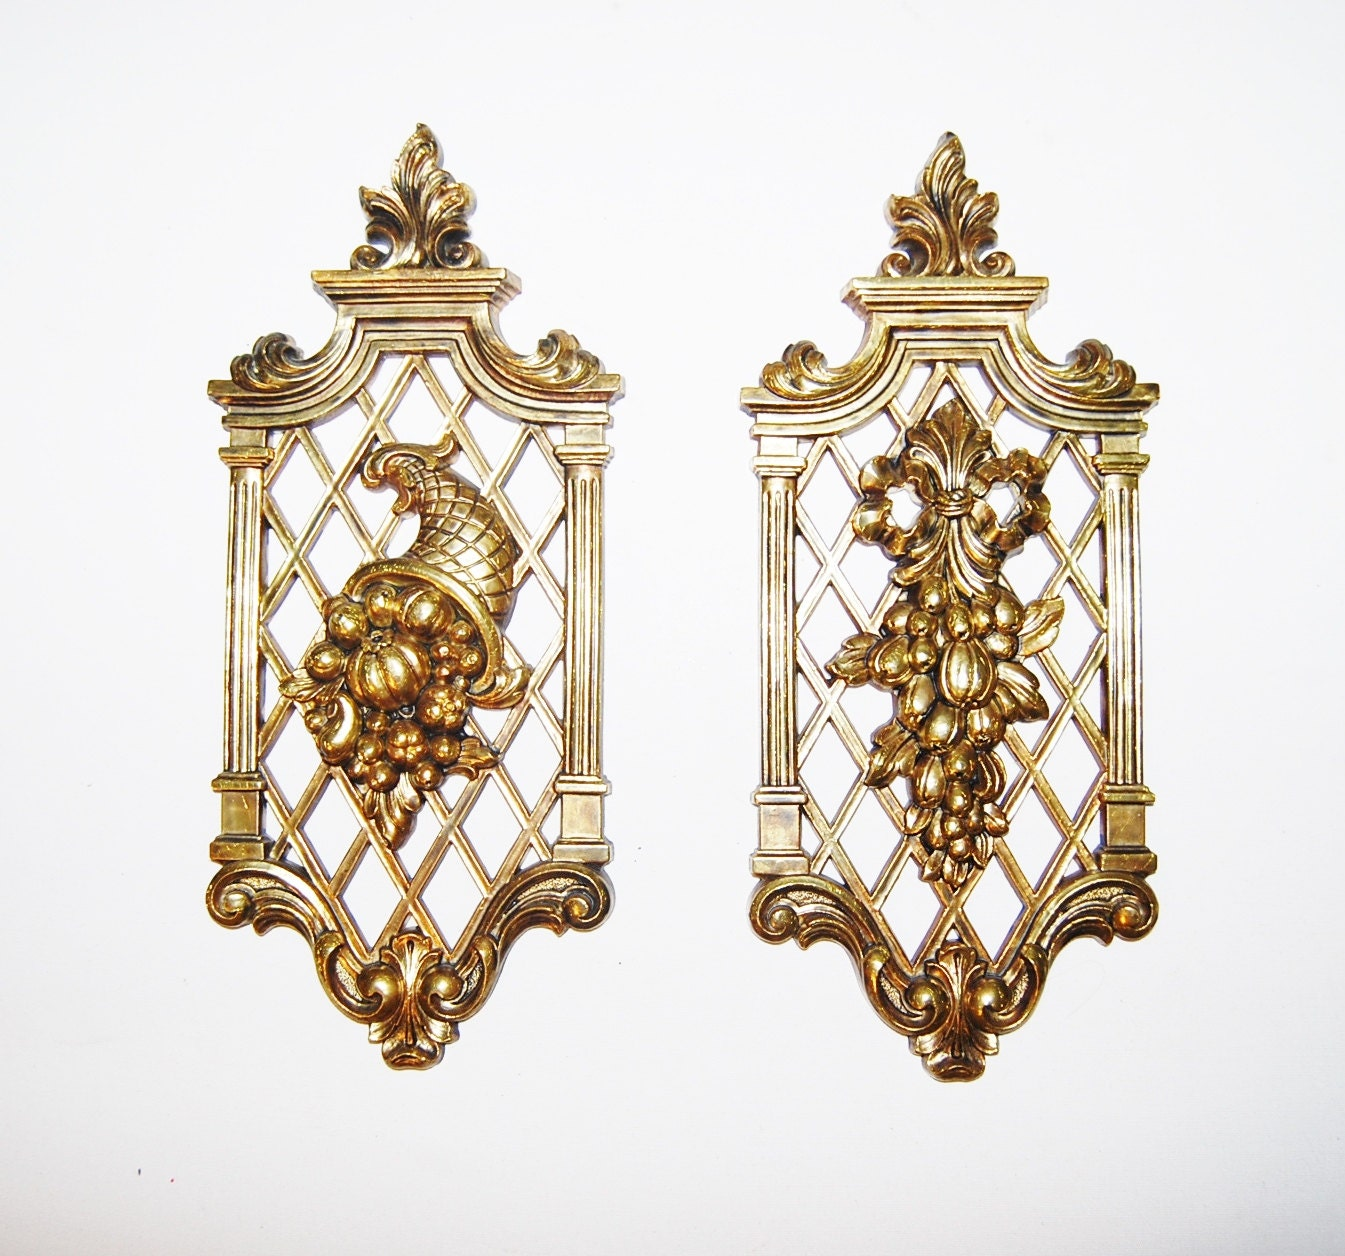 Vintage hollywood regency gold wall decor for Antique wall decor